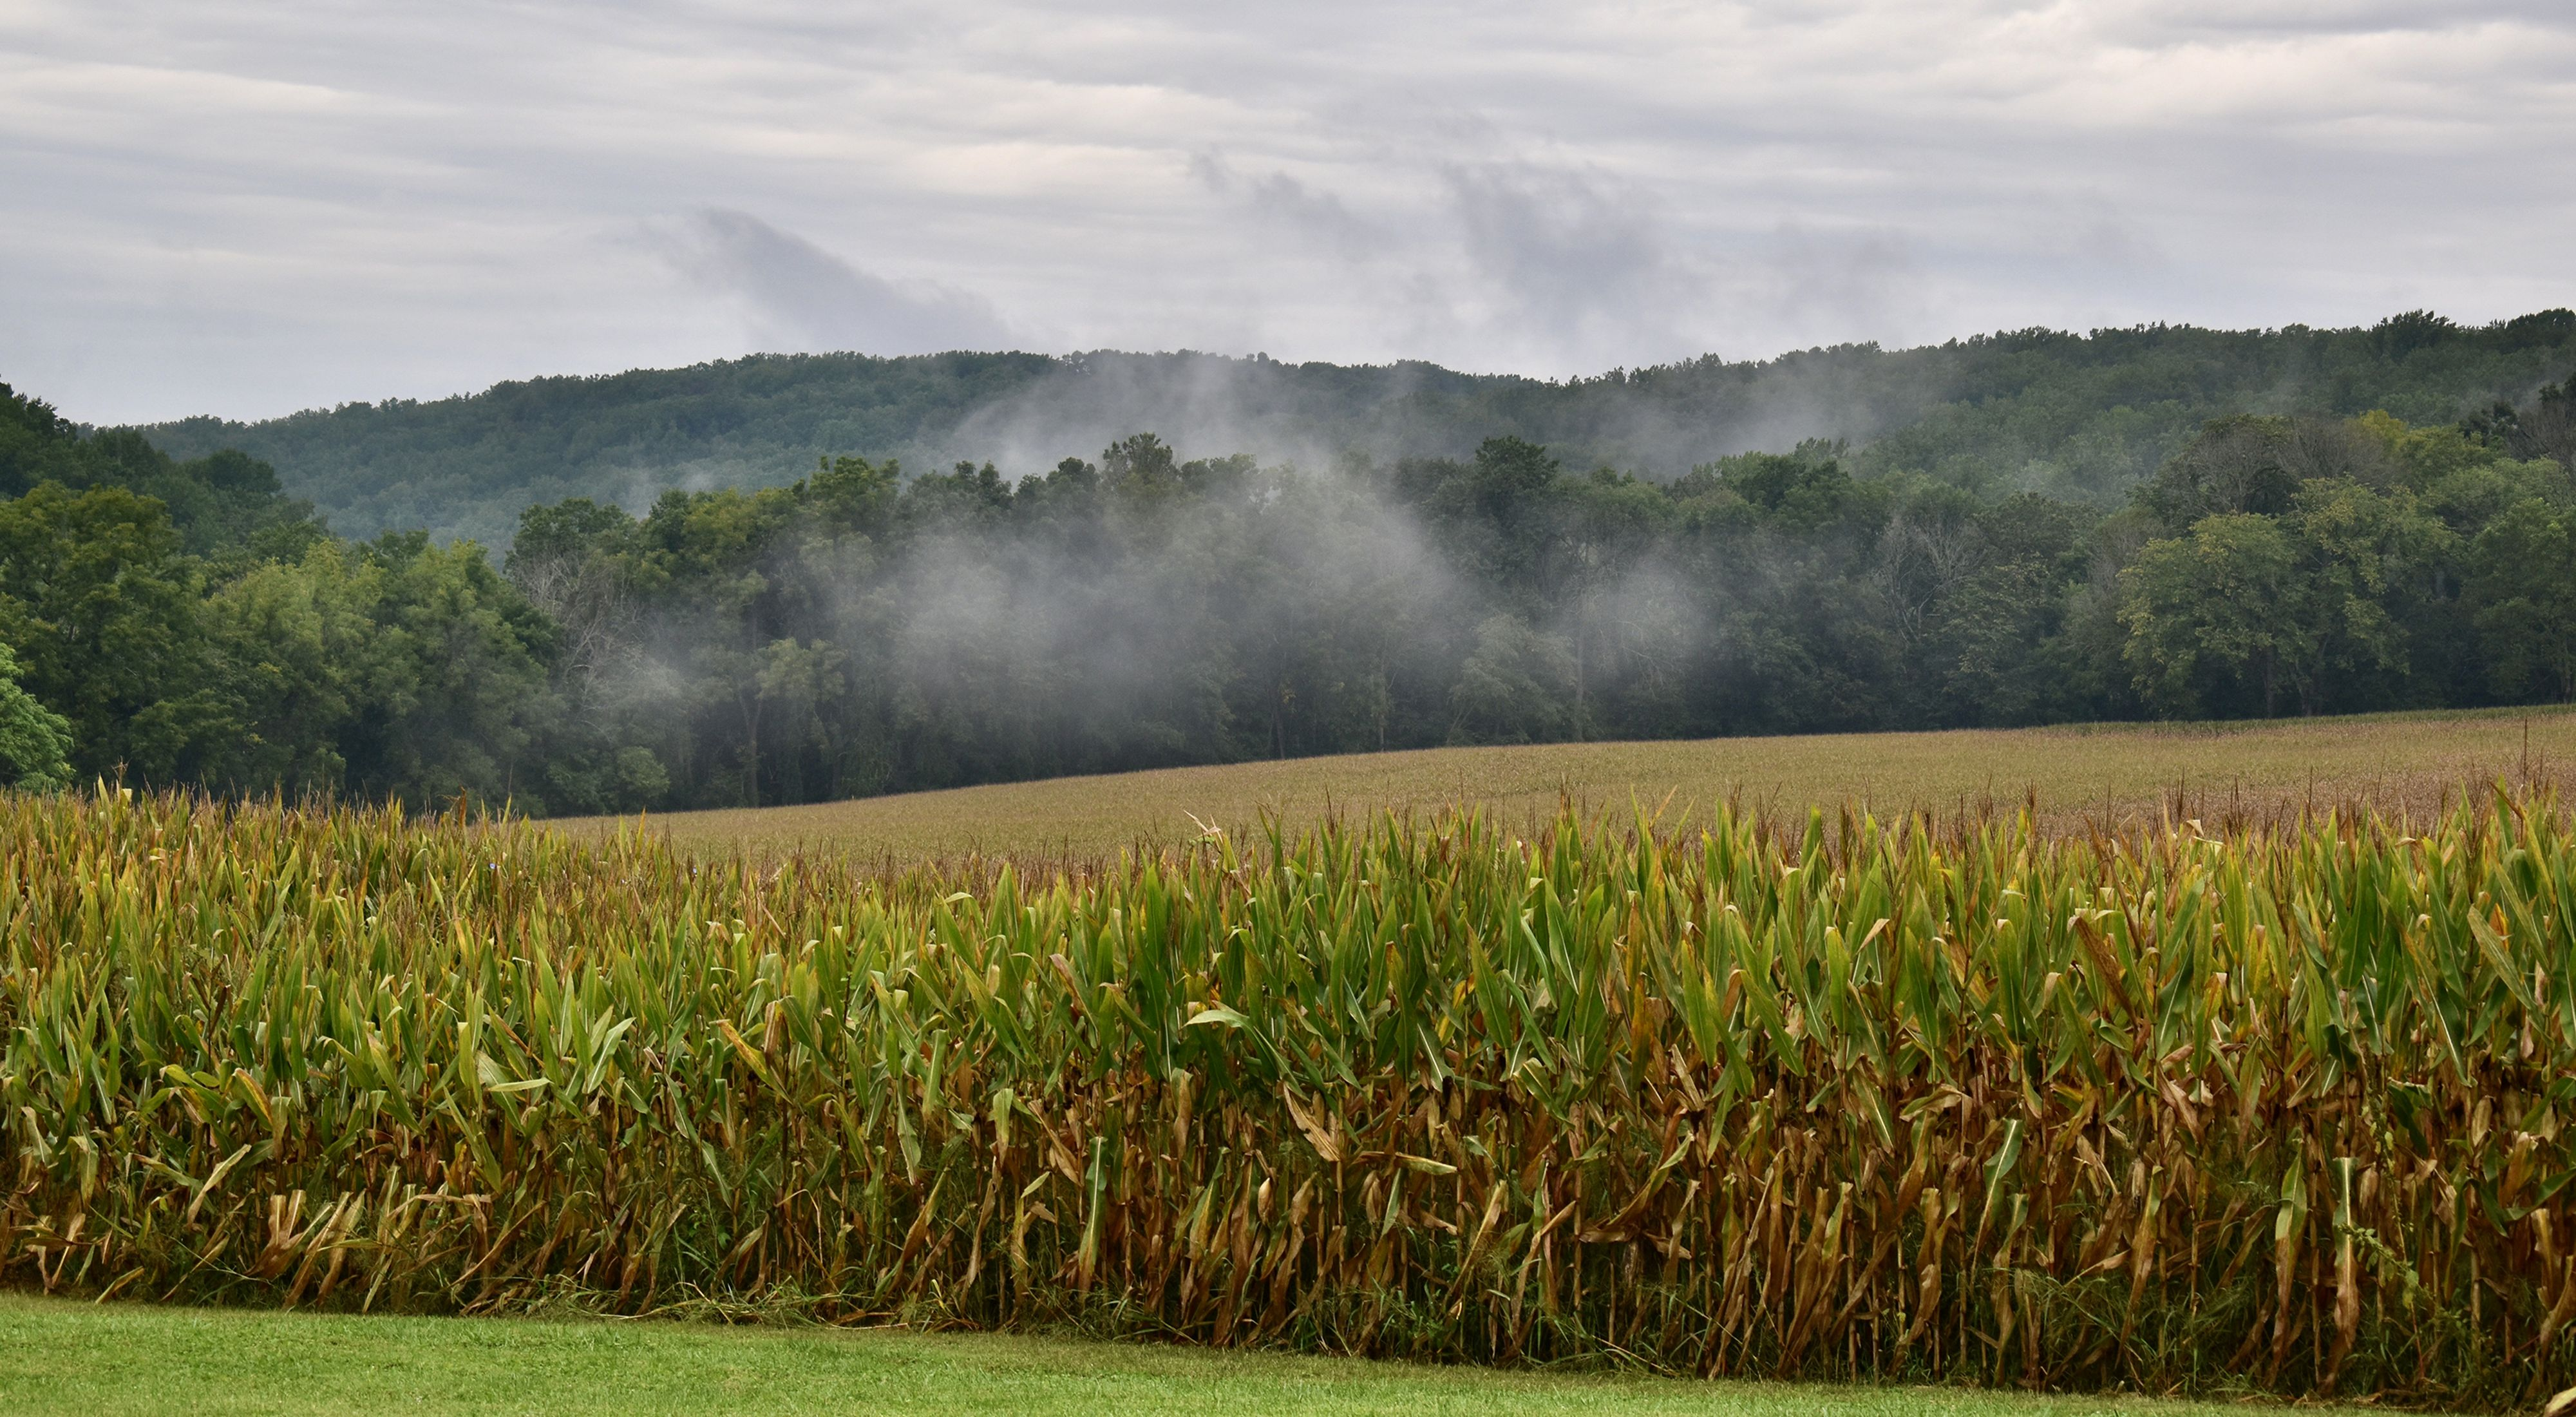 White mist rises from a green forested ridge that runs behind a farm field. Yellowing late season corn stands in the foreground.